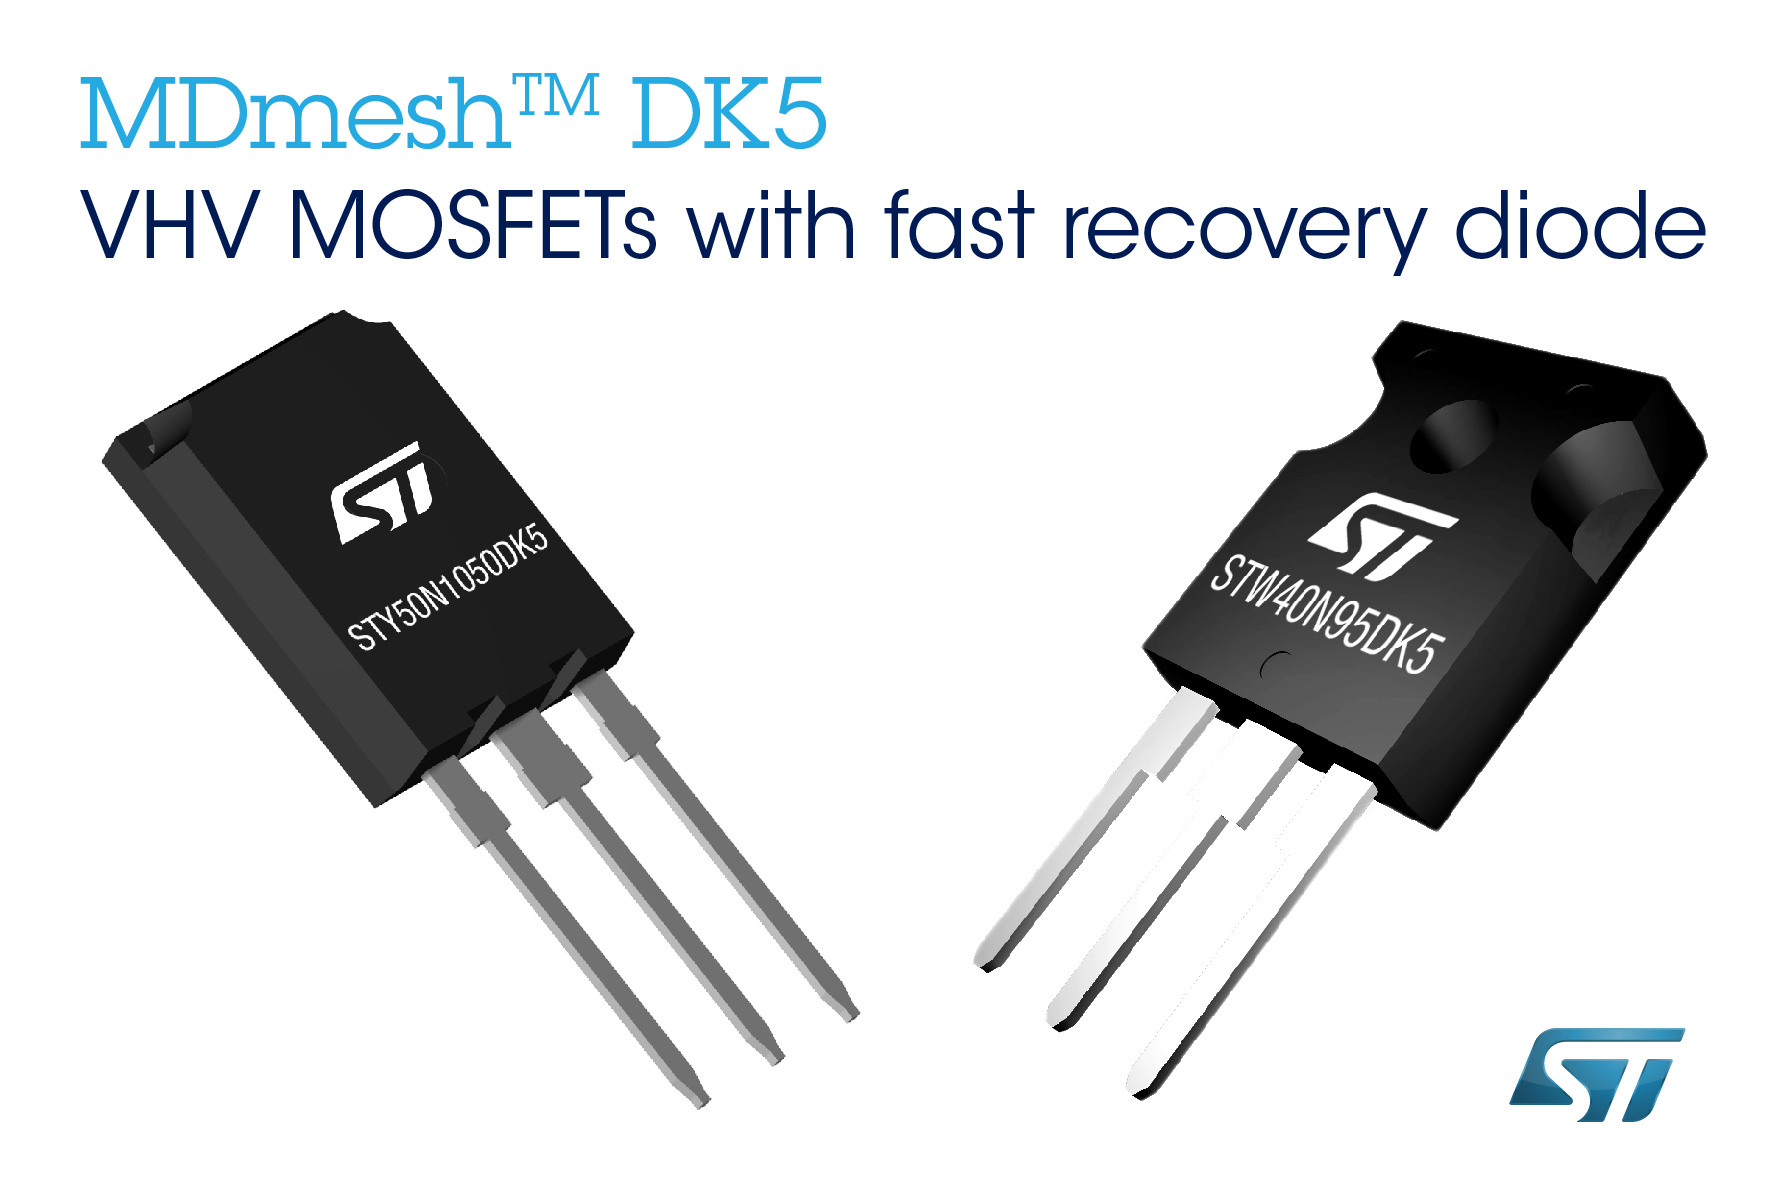 Stmicroelectronics New Mdmesh Mosfets With Fast Recovery Diode Electronics Technology Low Pass Filter Circuit Enhanced Step Enhance Power Density Of High Efficiency Converters